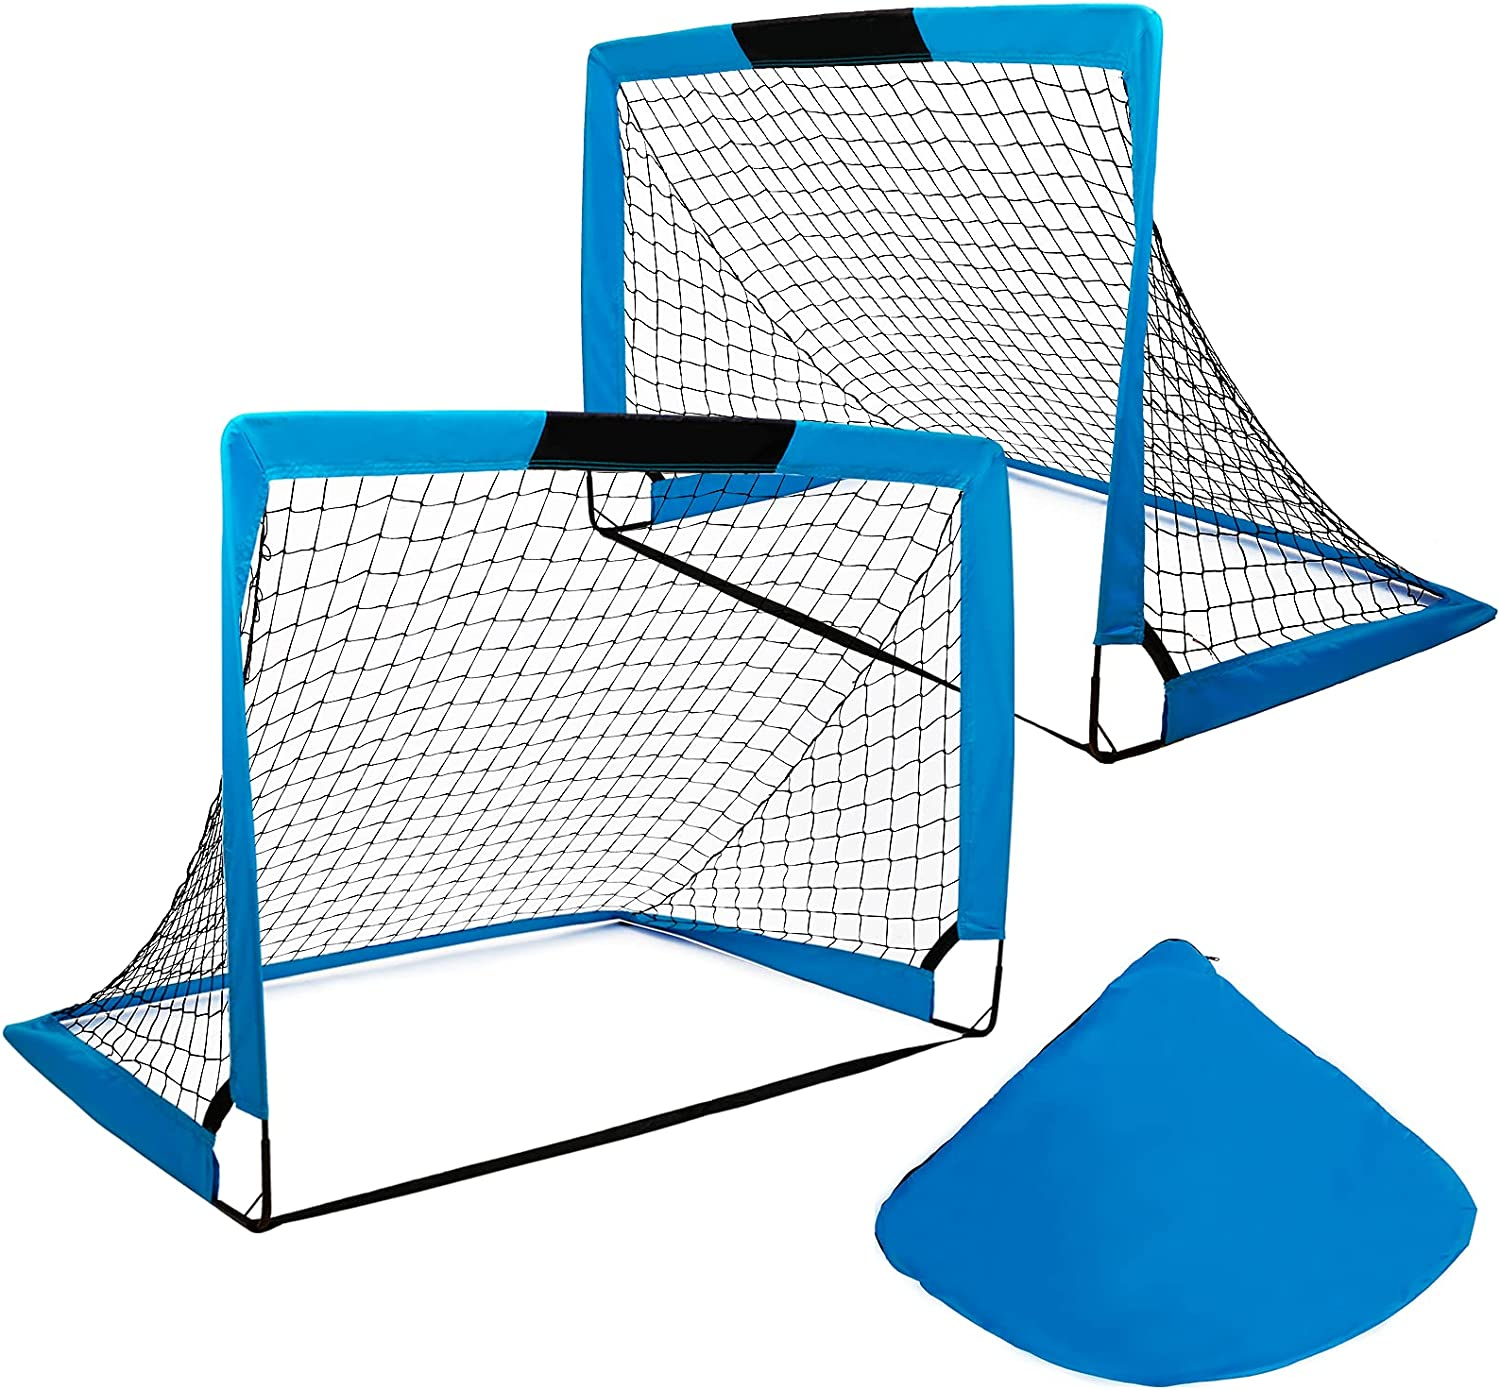 Portable Foldable Soccer Goals Set of with Carry 4'x3' B 5 Charlotte Mall popular Size 2-